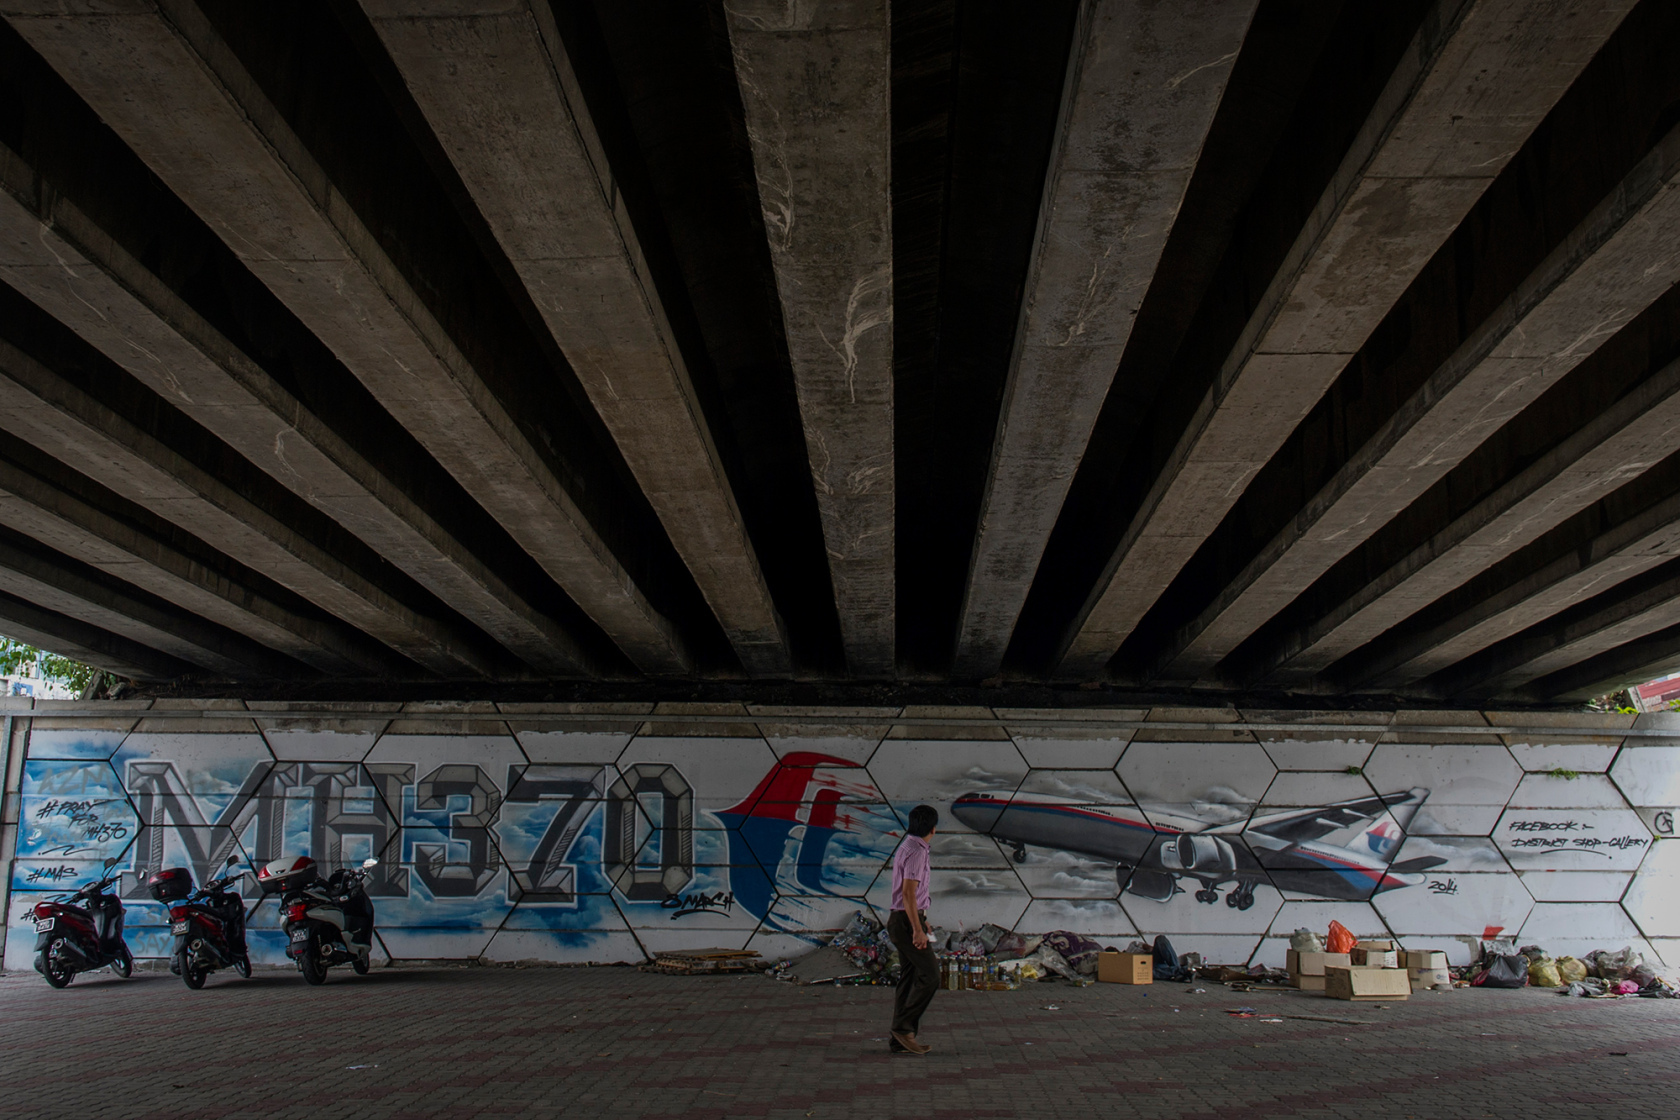 An unidentified man walks past MH370 related street art under a flyover in Kuala Lumpur, Malaysia.